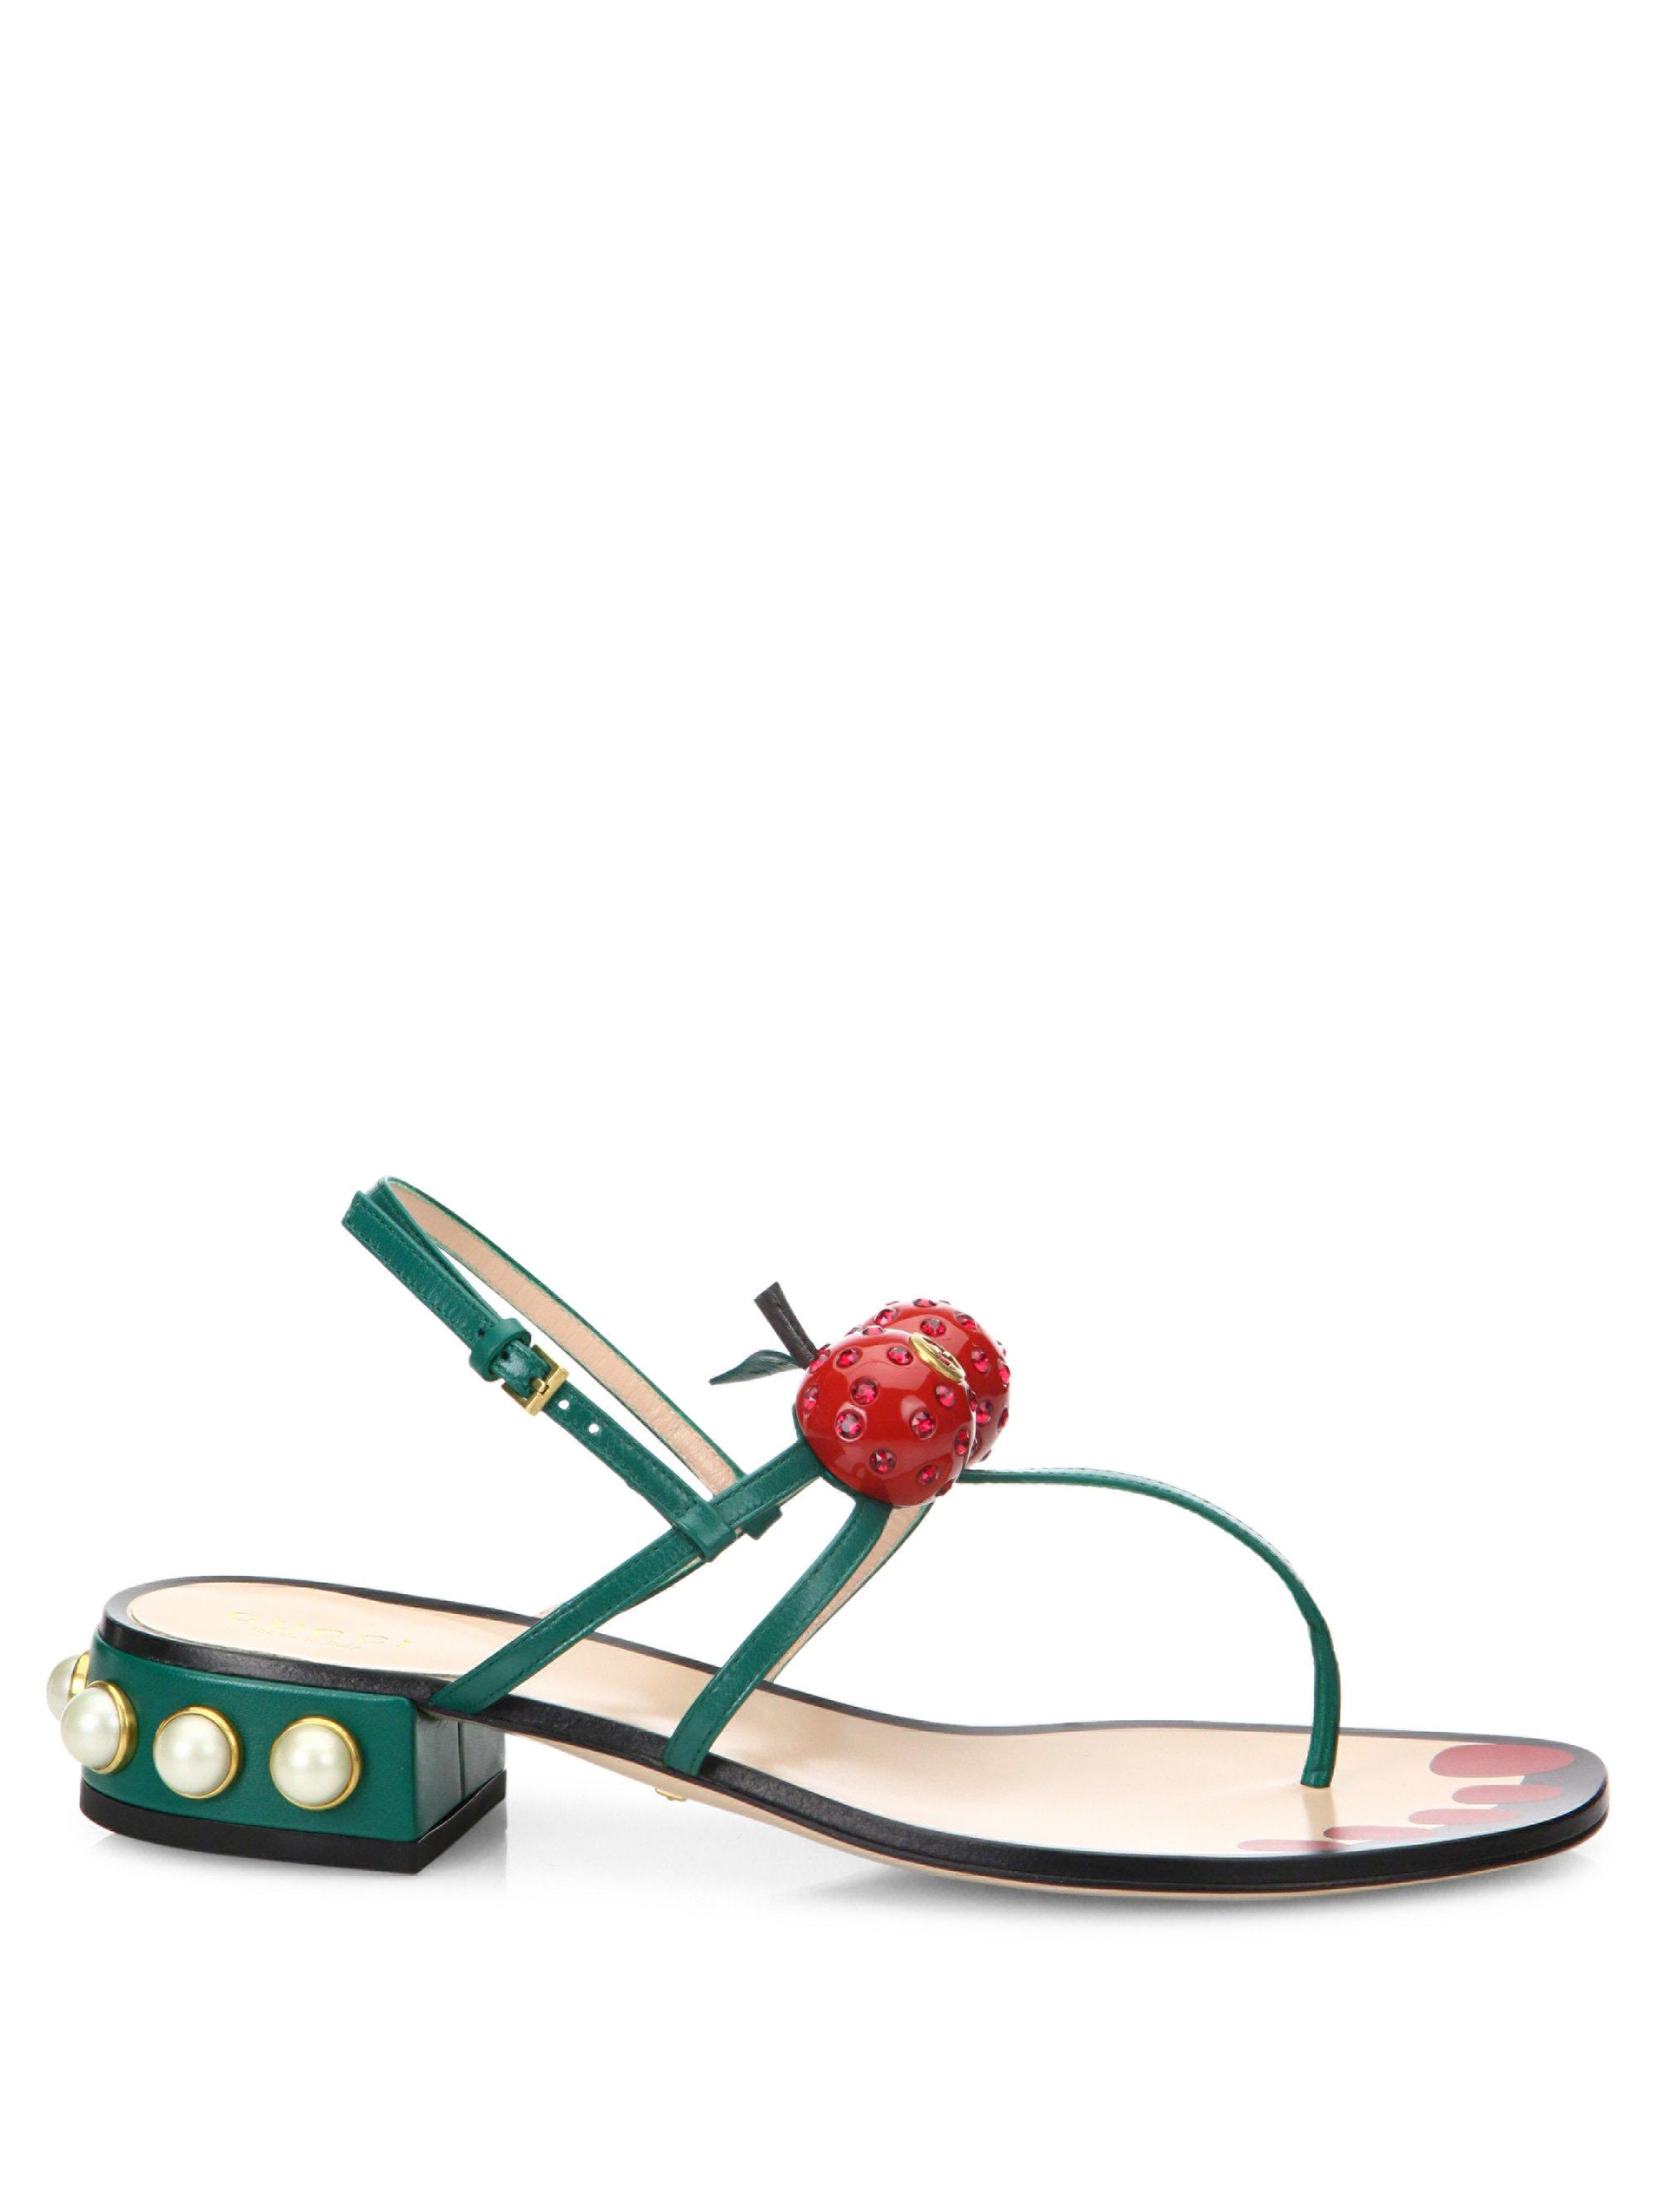 d0603a363c52 Gucci Hatsumomo Cherry Leather Thong Sandal - Lyst